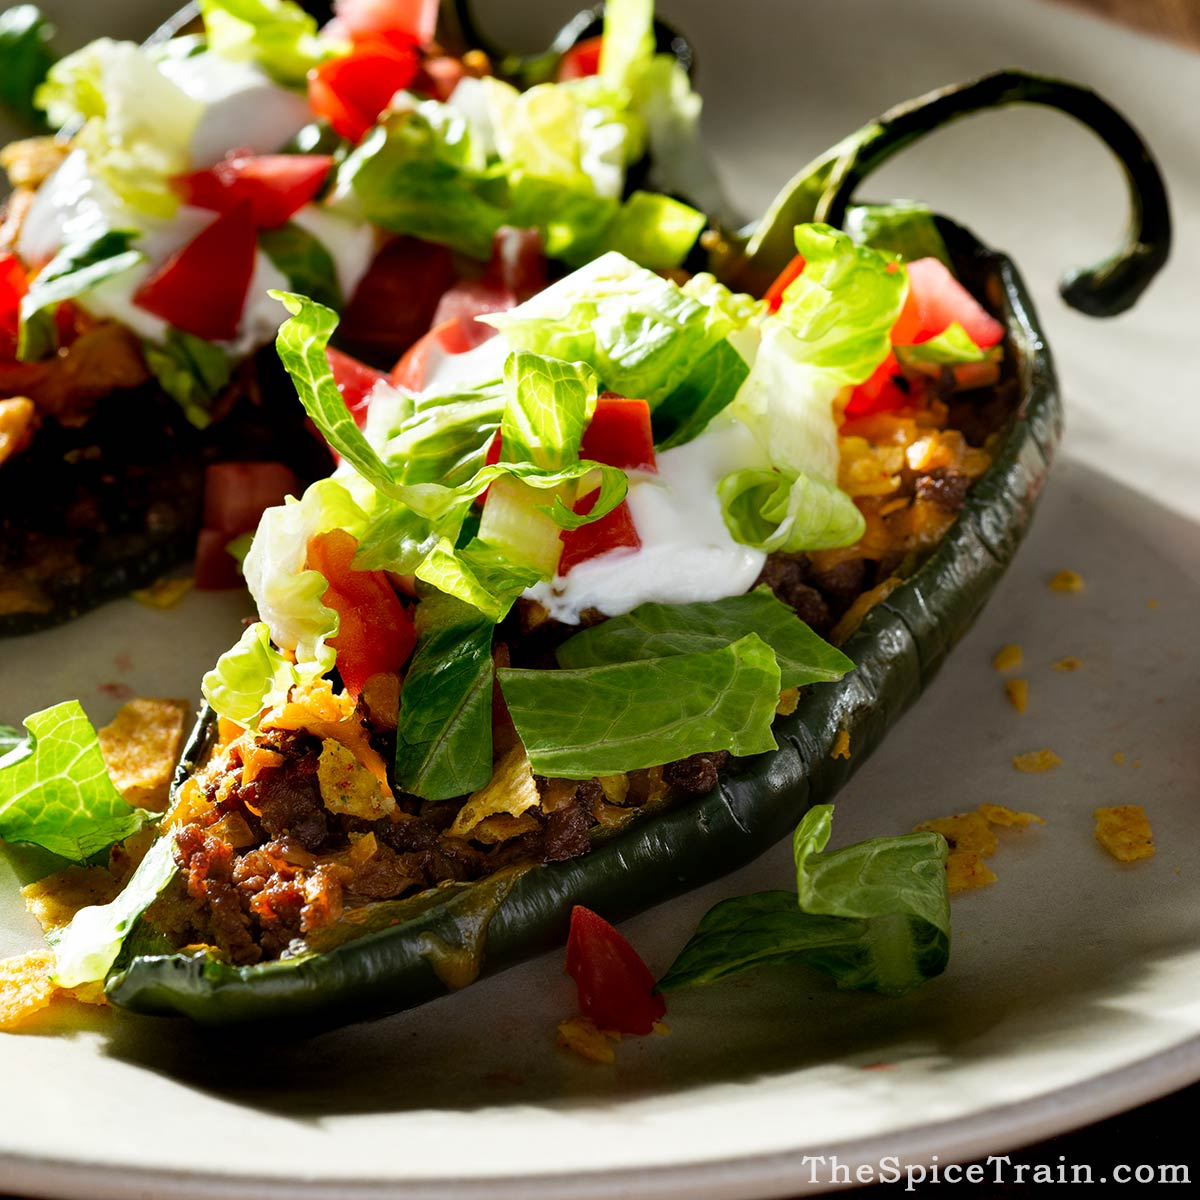 Stuffed poblano peppers with lettuce, tomato and sour cream topping.